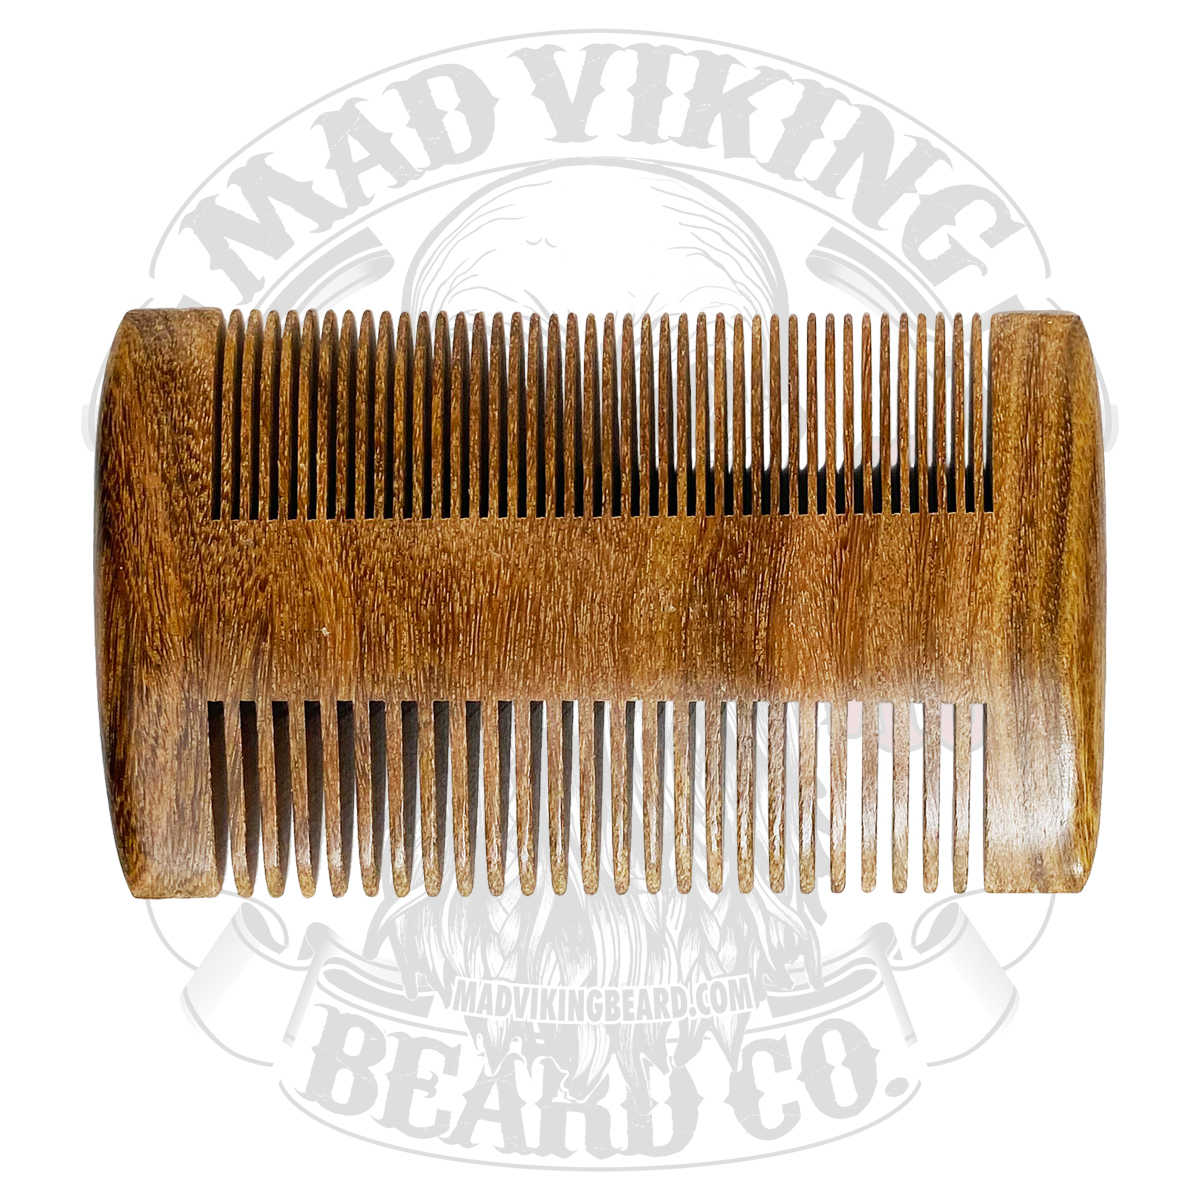 Mad Viking 2 in 1 beard and mustache comb